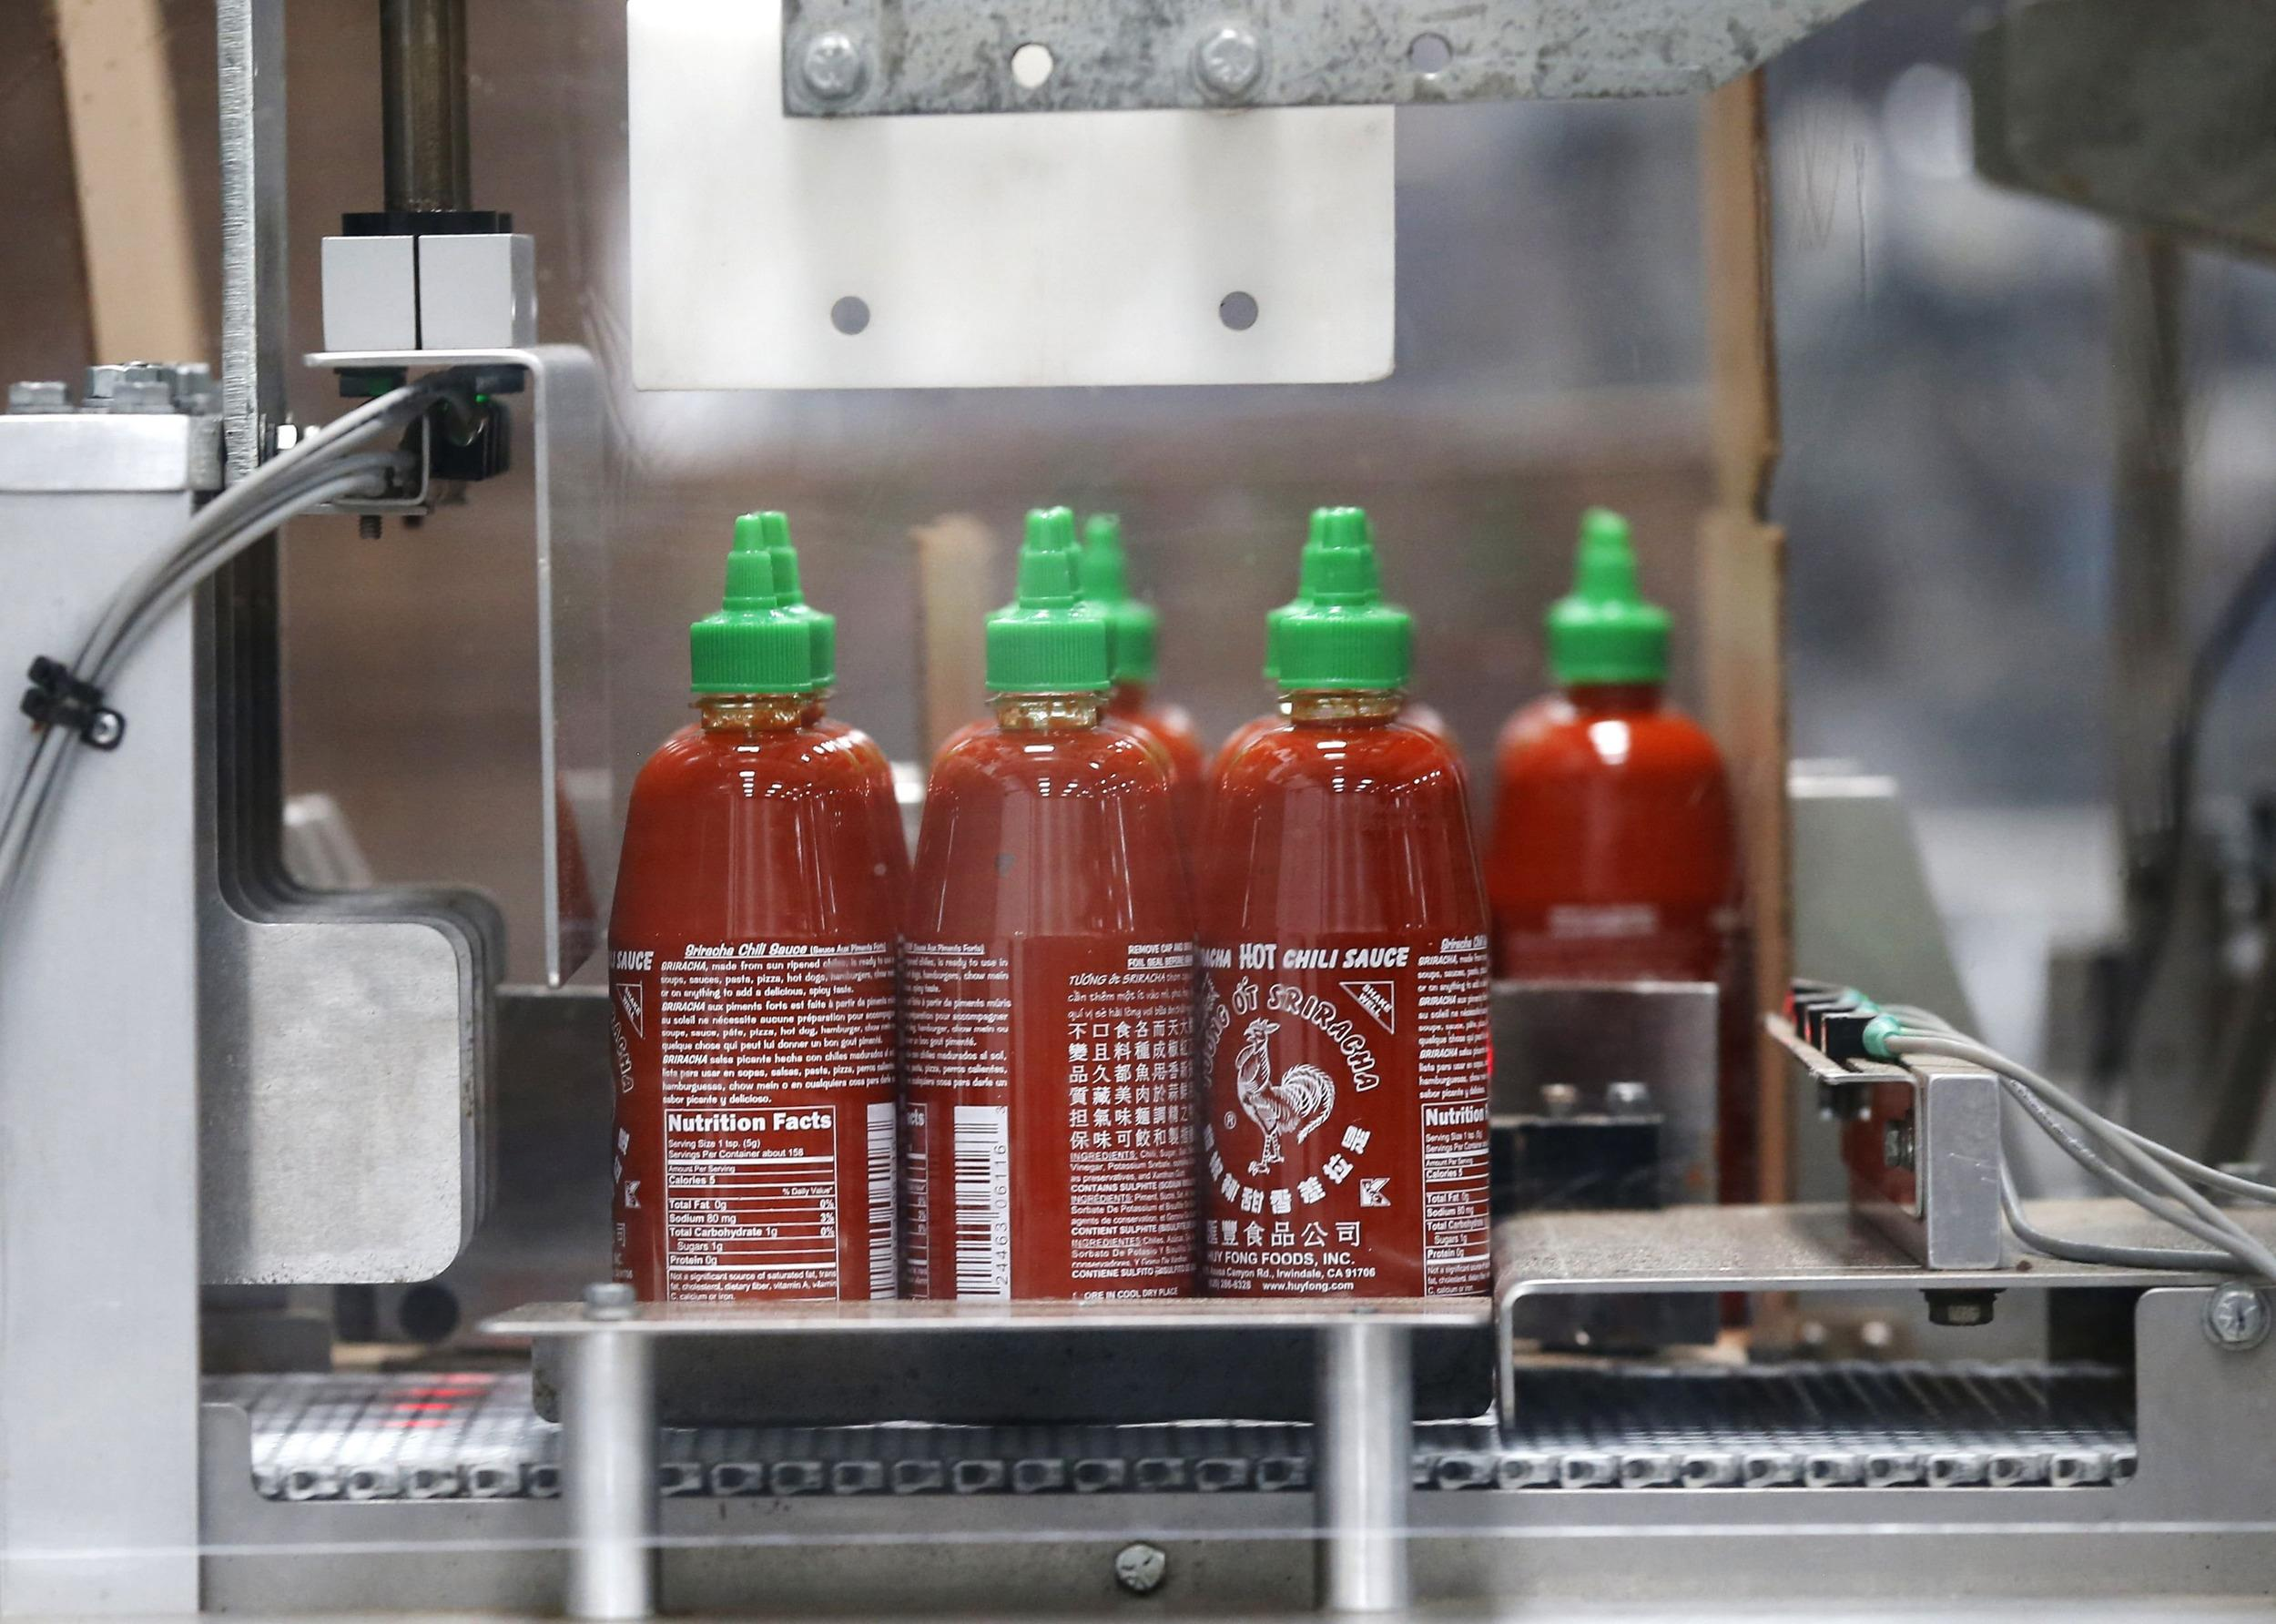 The fight is apparently over between the makers of Sriracha hot sauce and a small California city that said its factory's smells were unbearable.